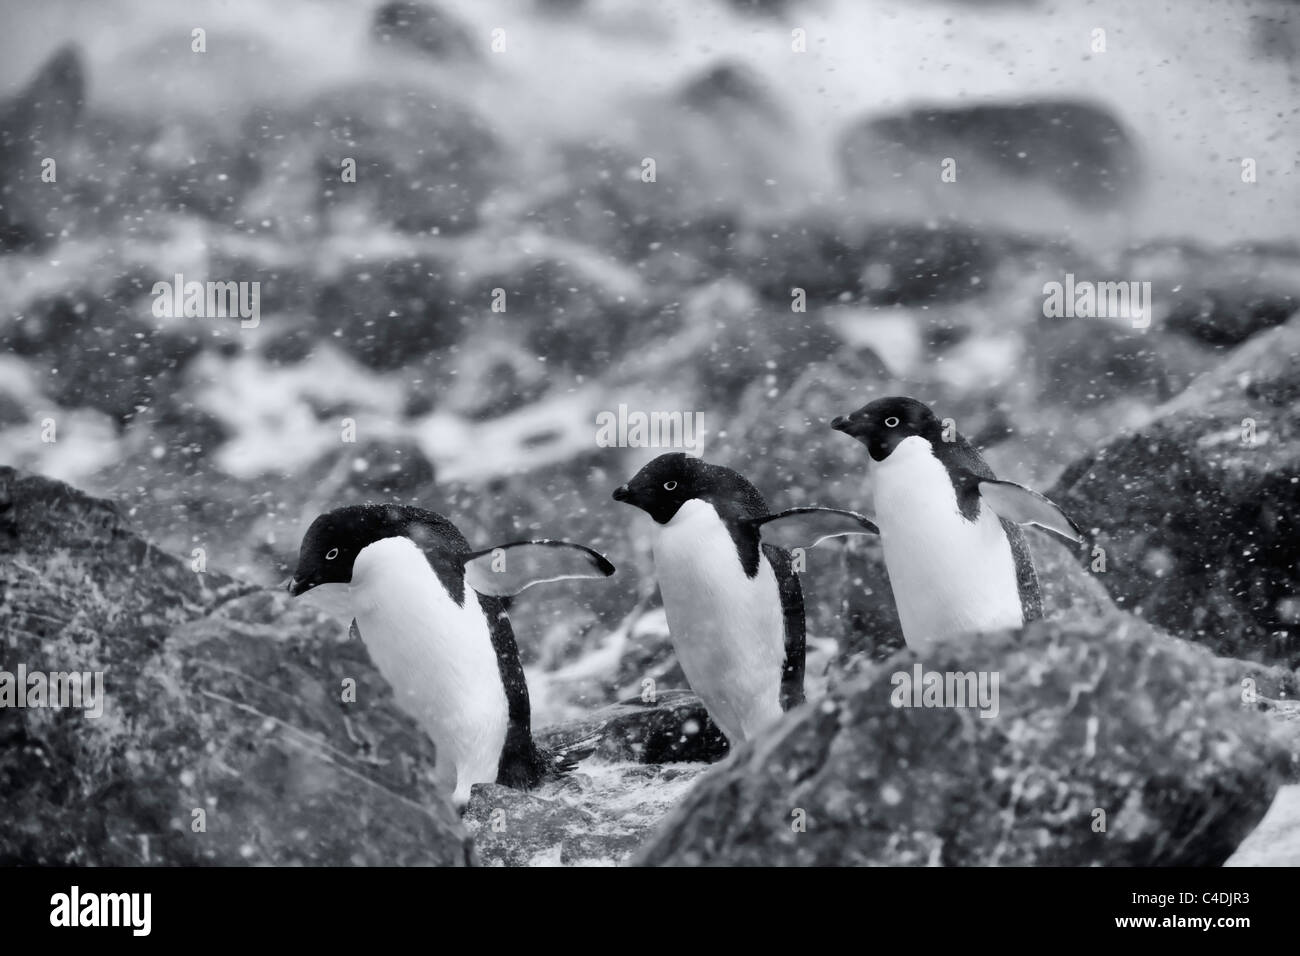 3 cute Adelie penguins march in line flippers out on rocky beach during windy snow storm, white-out antarctic blizzard - Stock Image